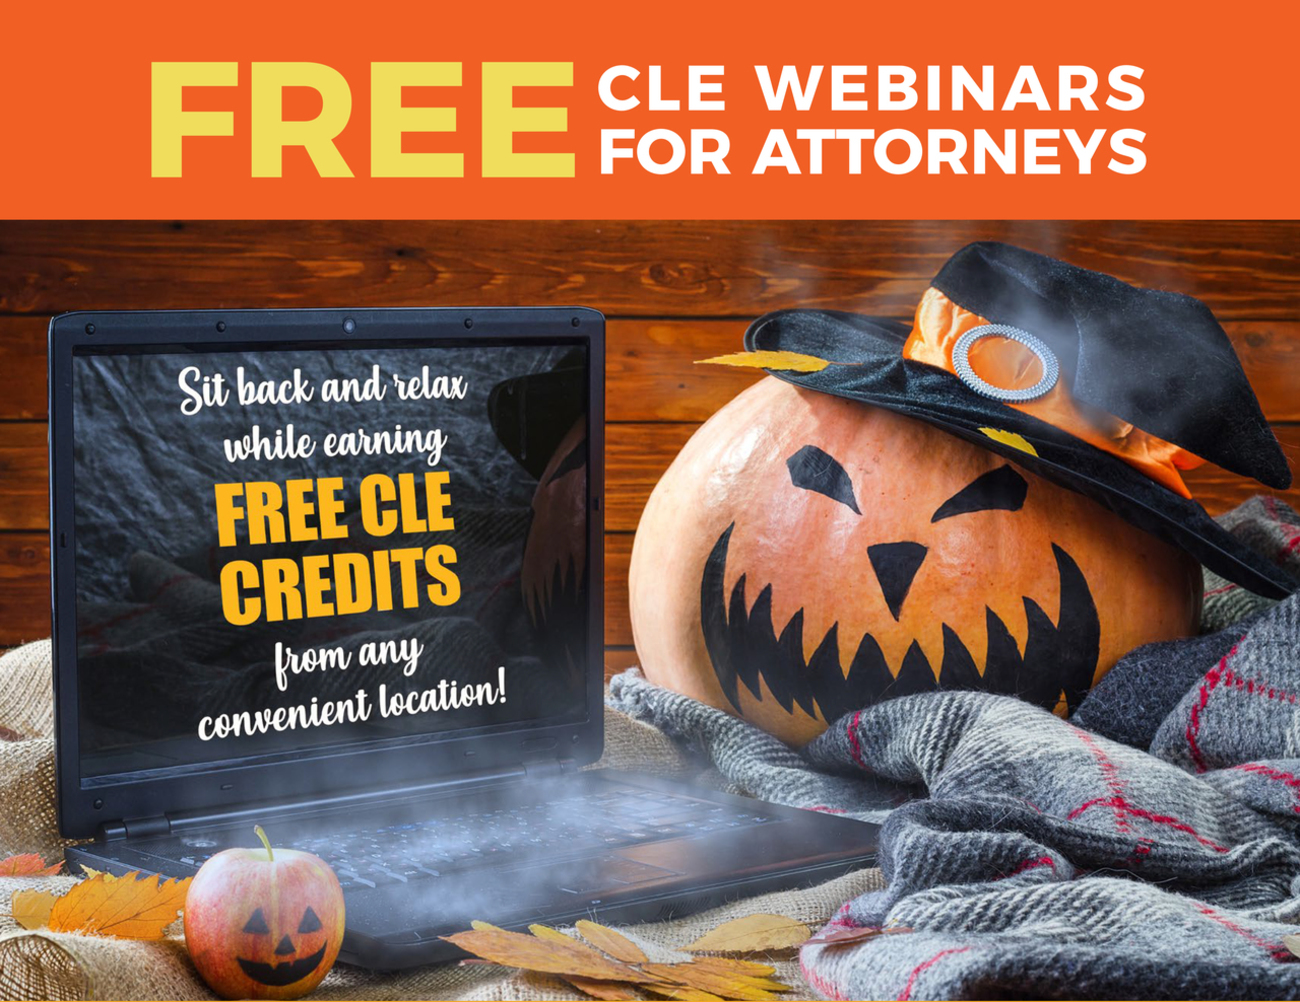 Free CLE Webinars For Attorneys